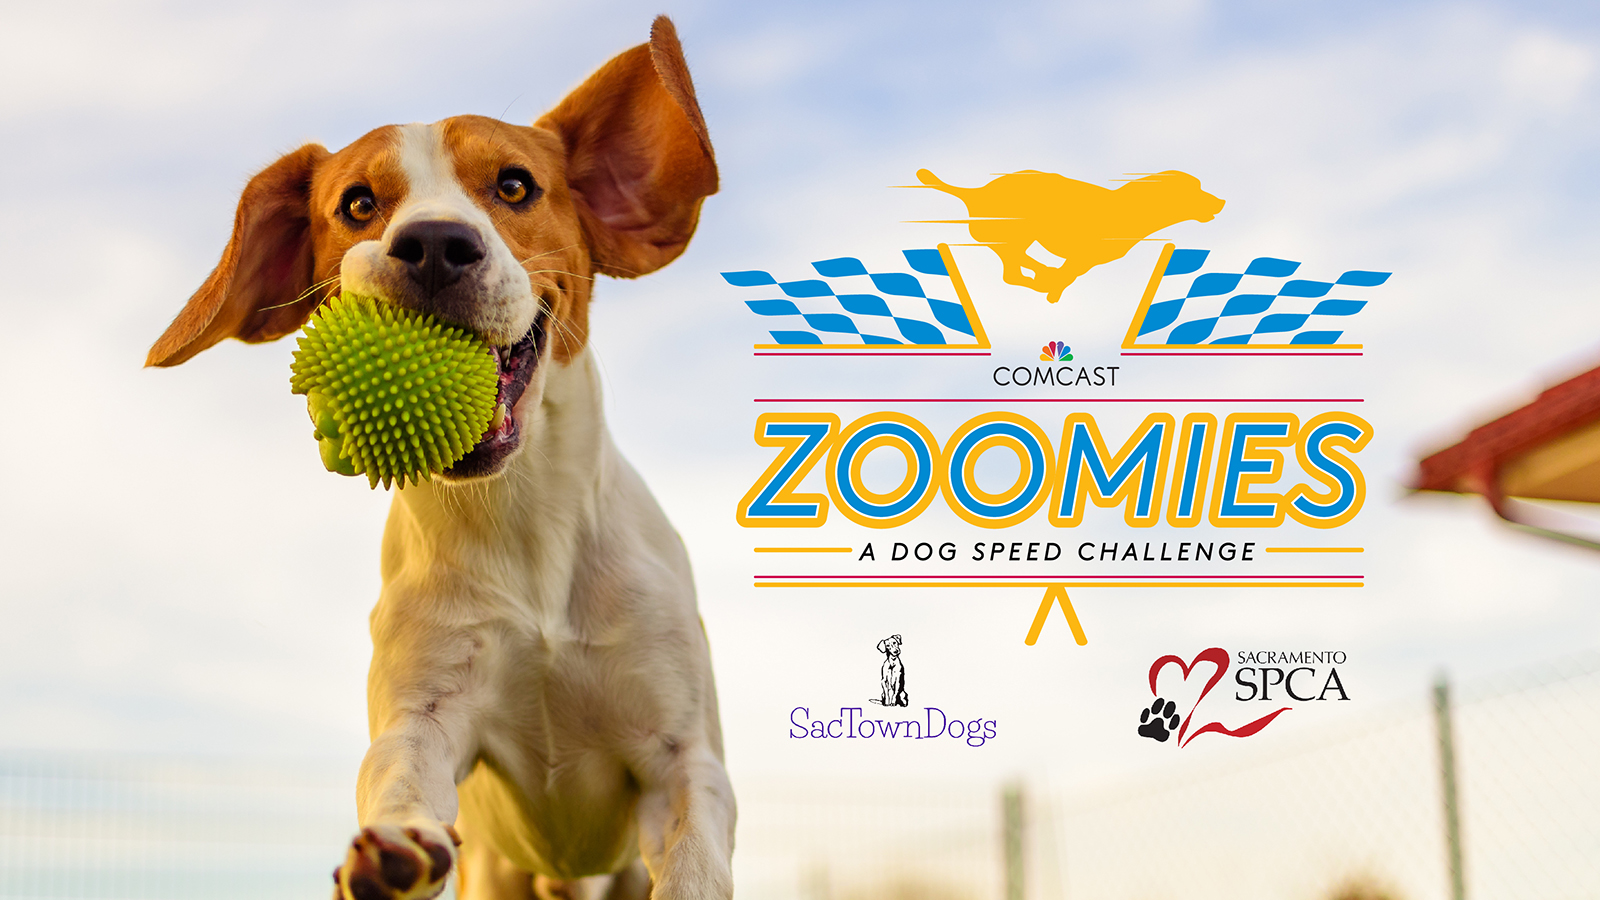 Comcast Zoomies: Dog Speed Challenge Debuts to Support Sacramento SPCA and Show Off Speedy Pups